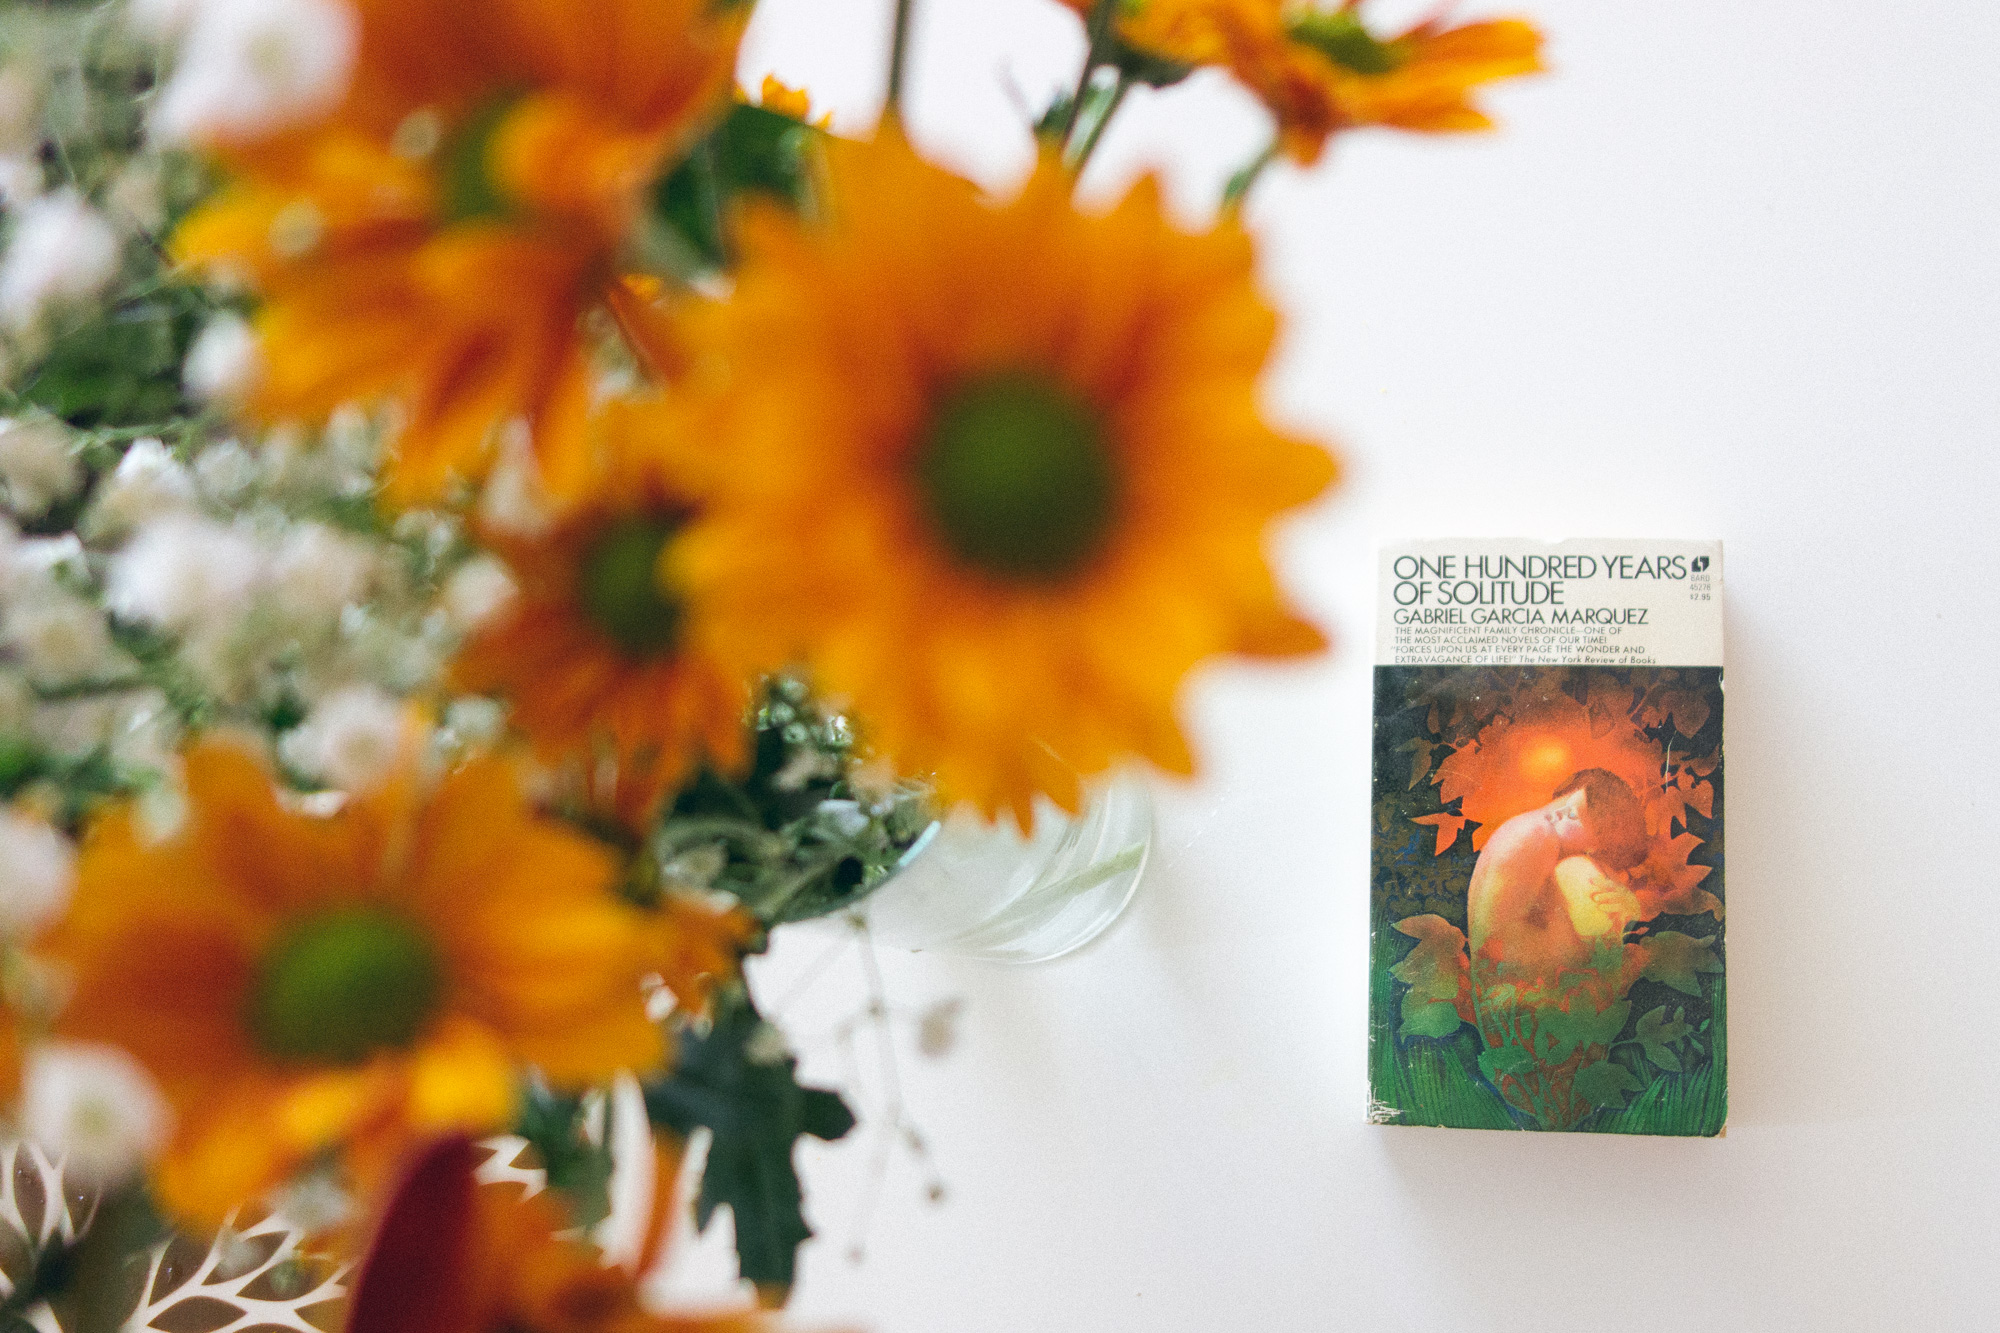 100 Years of Solitude book and some orange flowers